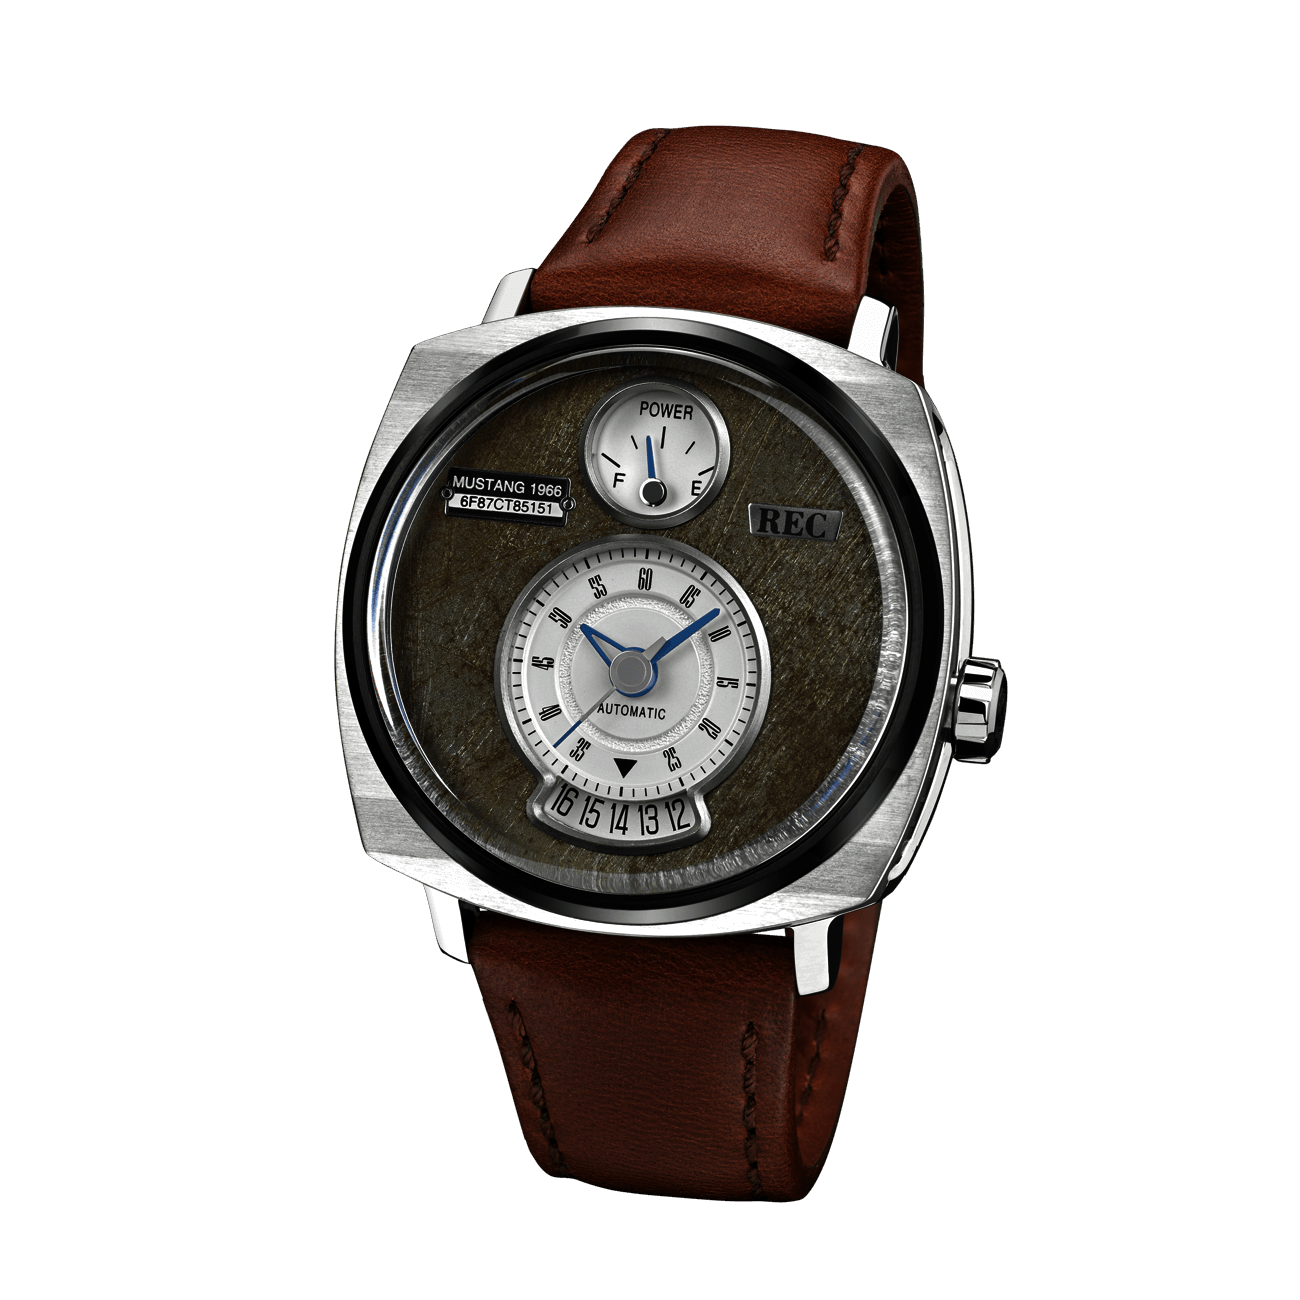 Ford Mustang Recycled Watch